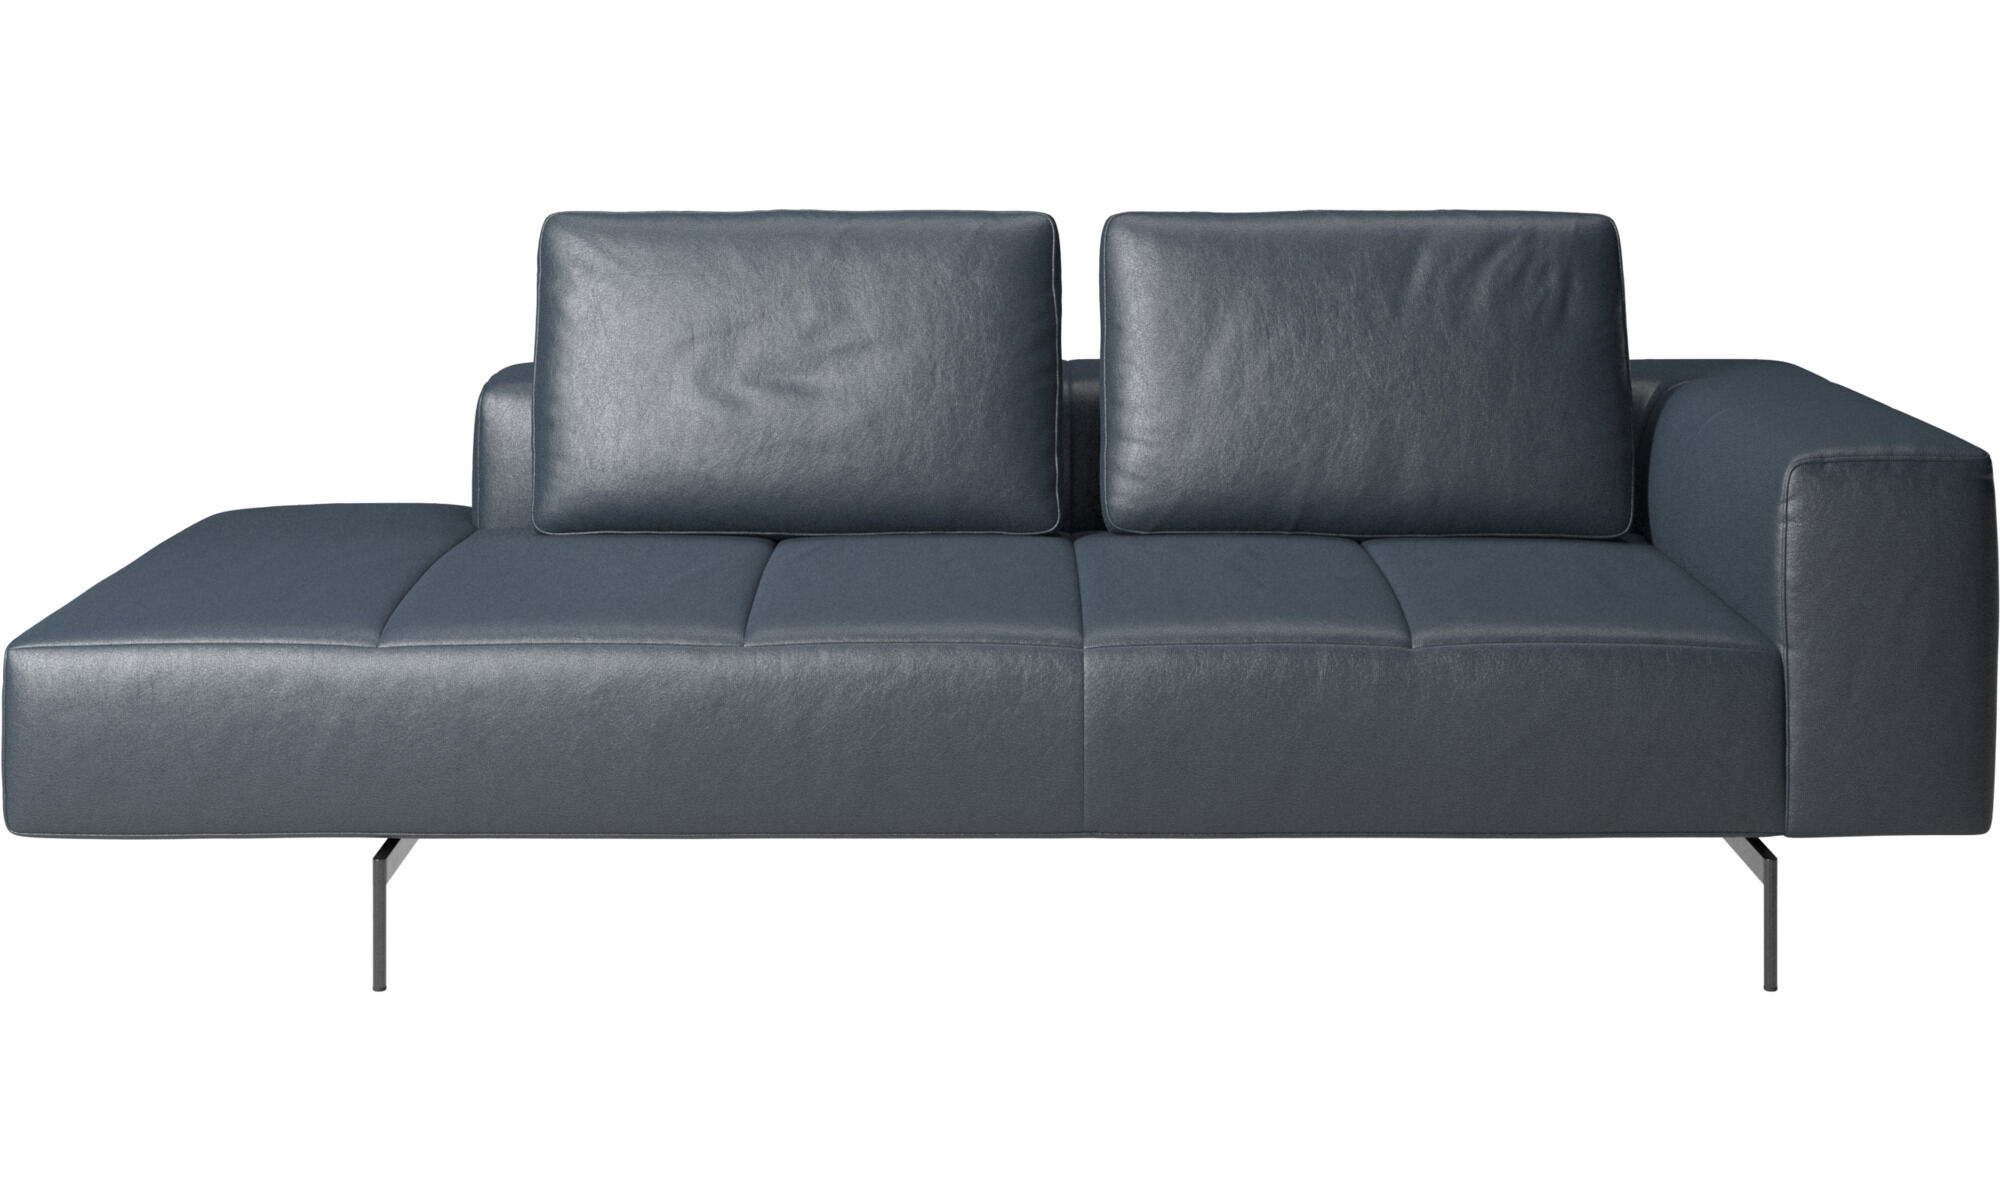 modern chaise longue sofas quality from boconcept rh boconcept com Living Room Chaise Lounge Chair Bedroom Chaise Lounge